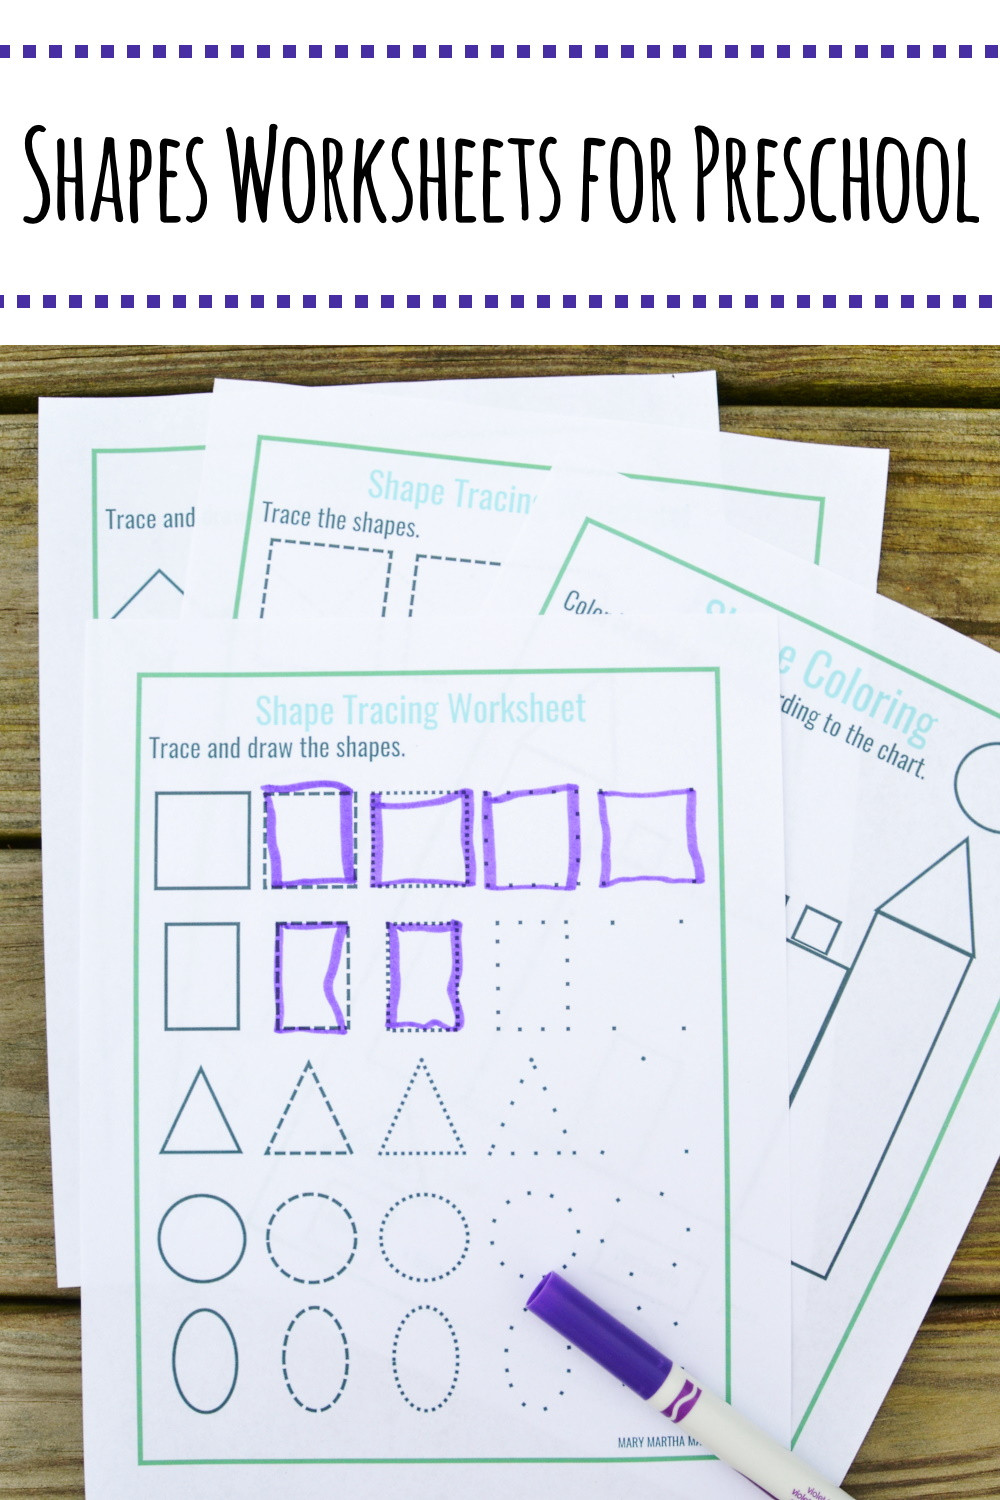 Free Printable Tracing Shapes Worksheets Shapes Worksheets for Preschool [free Printables] – Mary